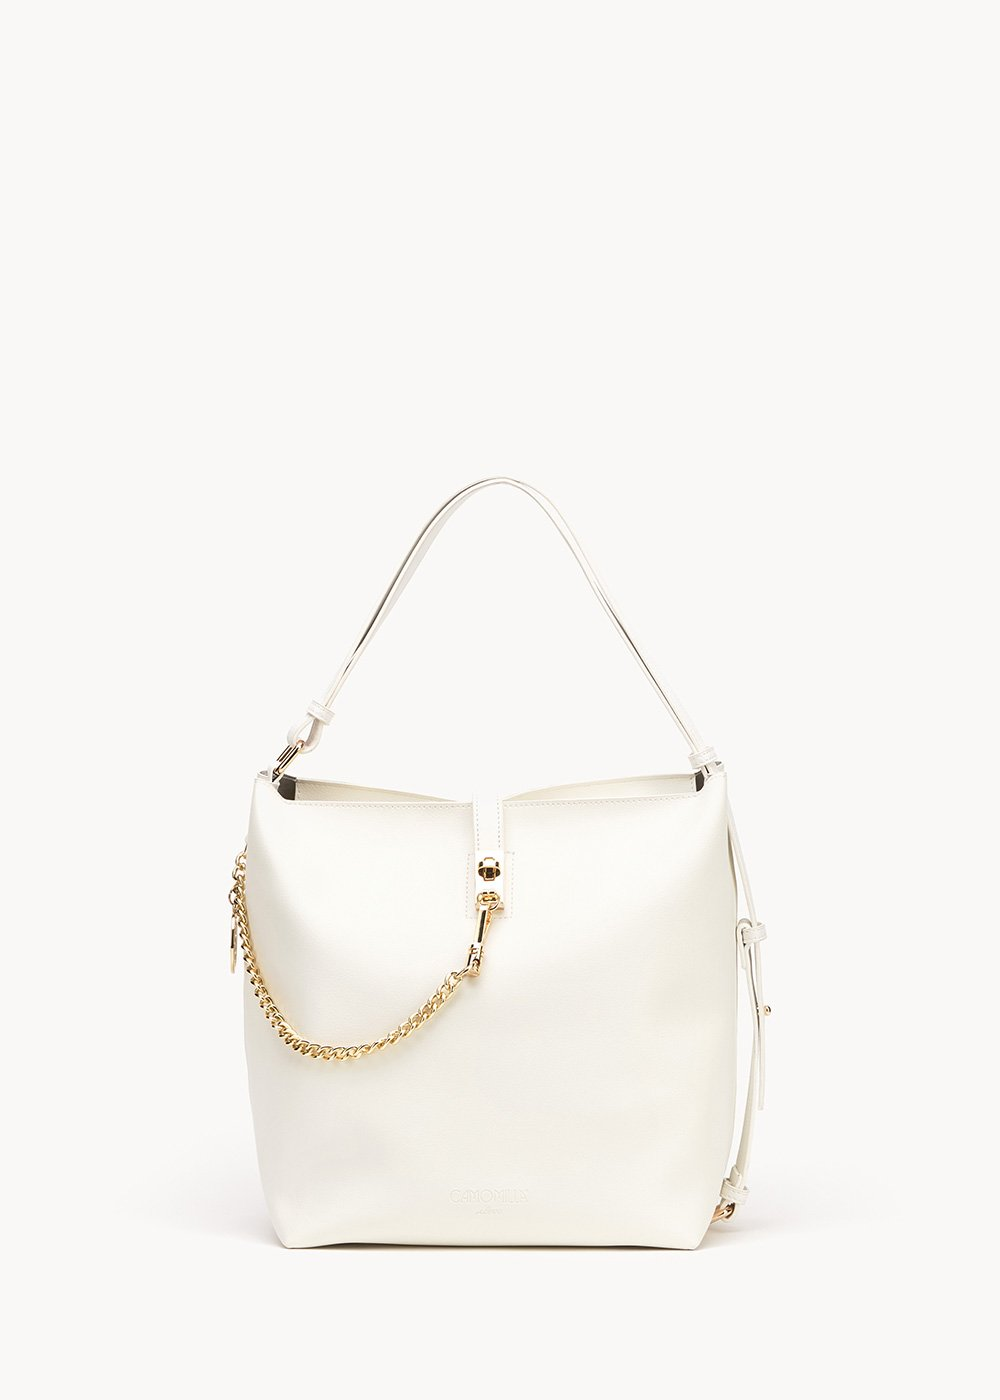 Beth bucket bag with gold details - White - Woman